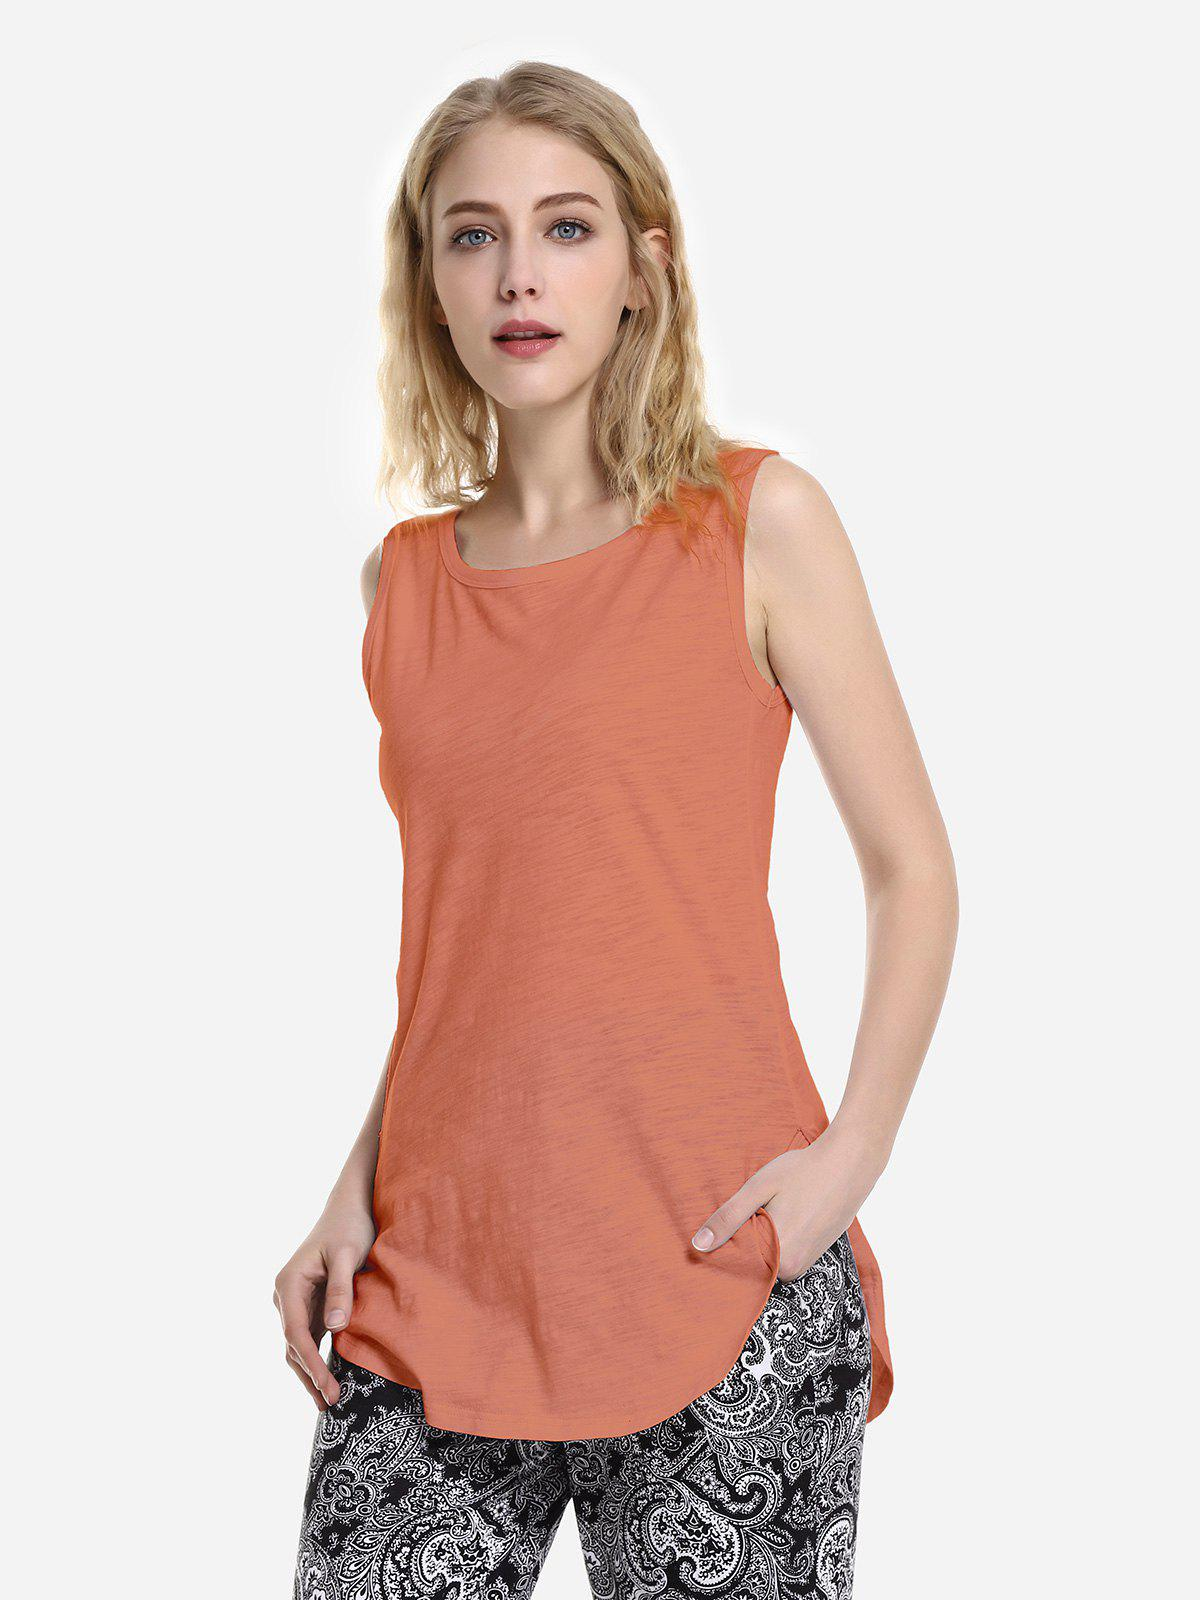 Best Round Neck Tank Top